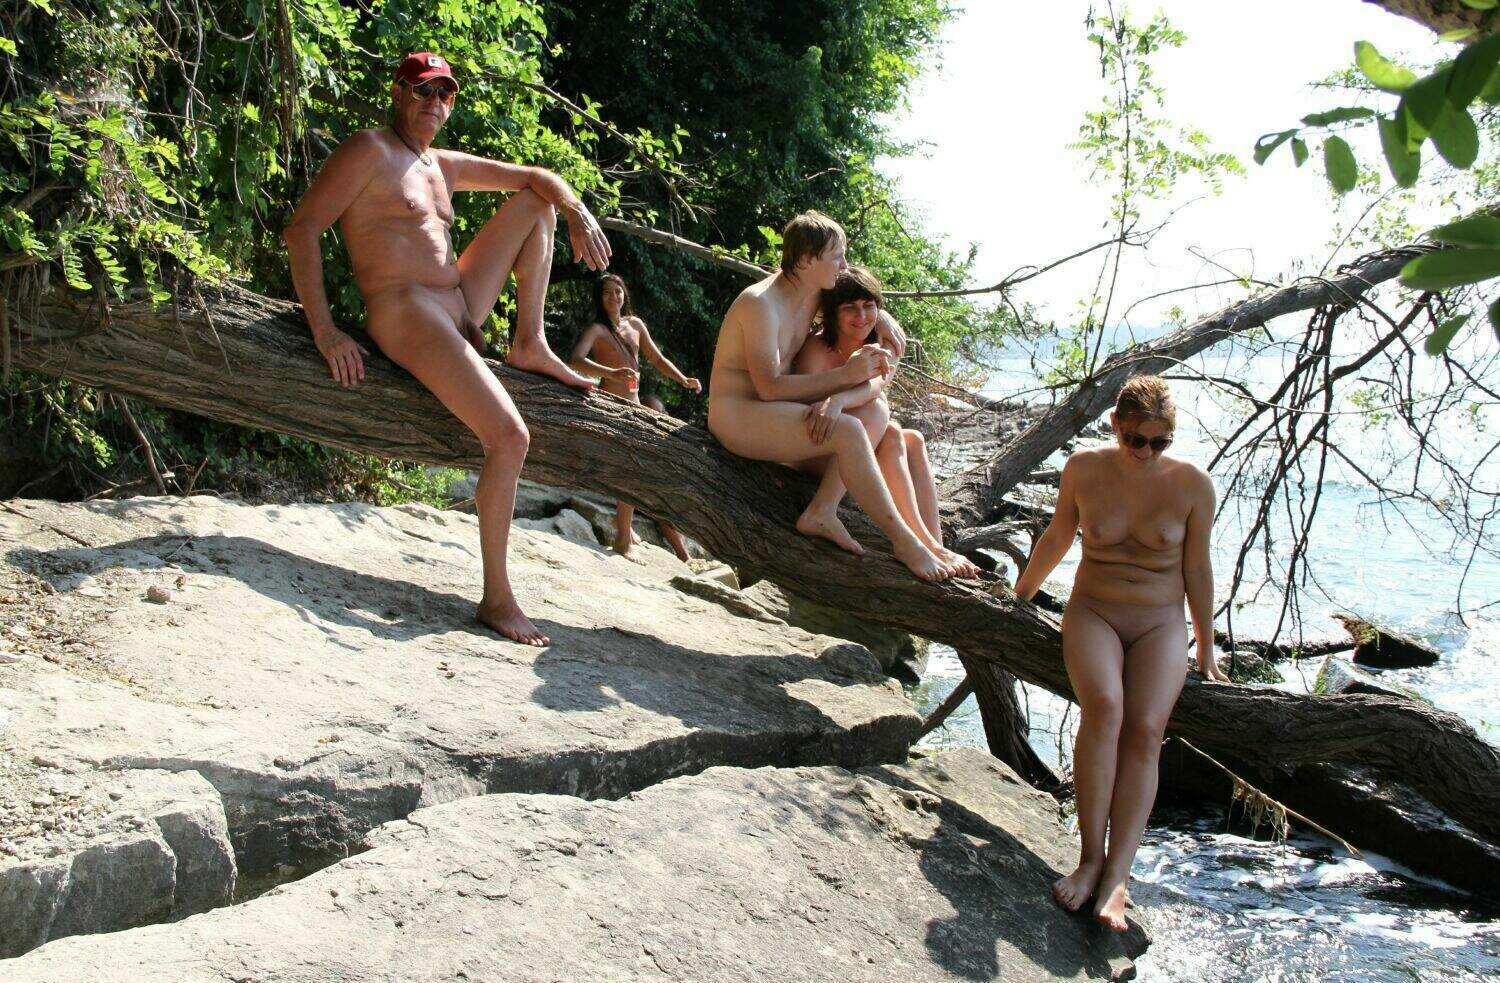 Log Balancing in Park – Naturism Family Events [Pure nudism photos]